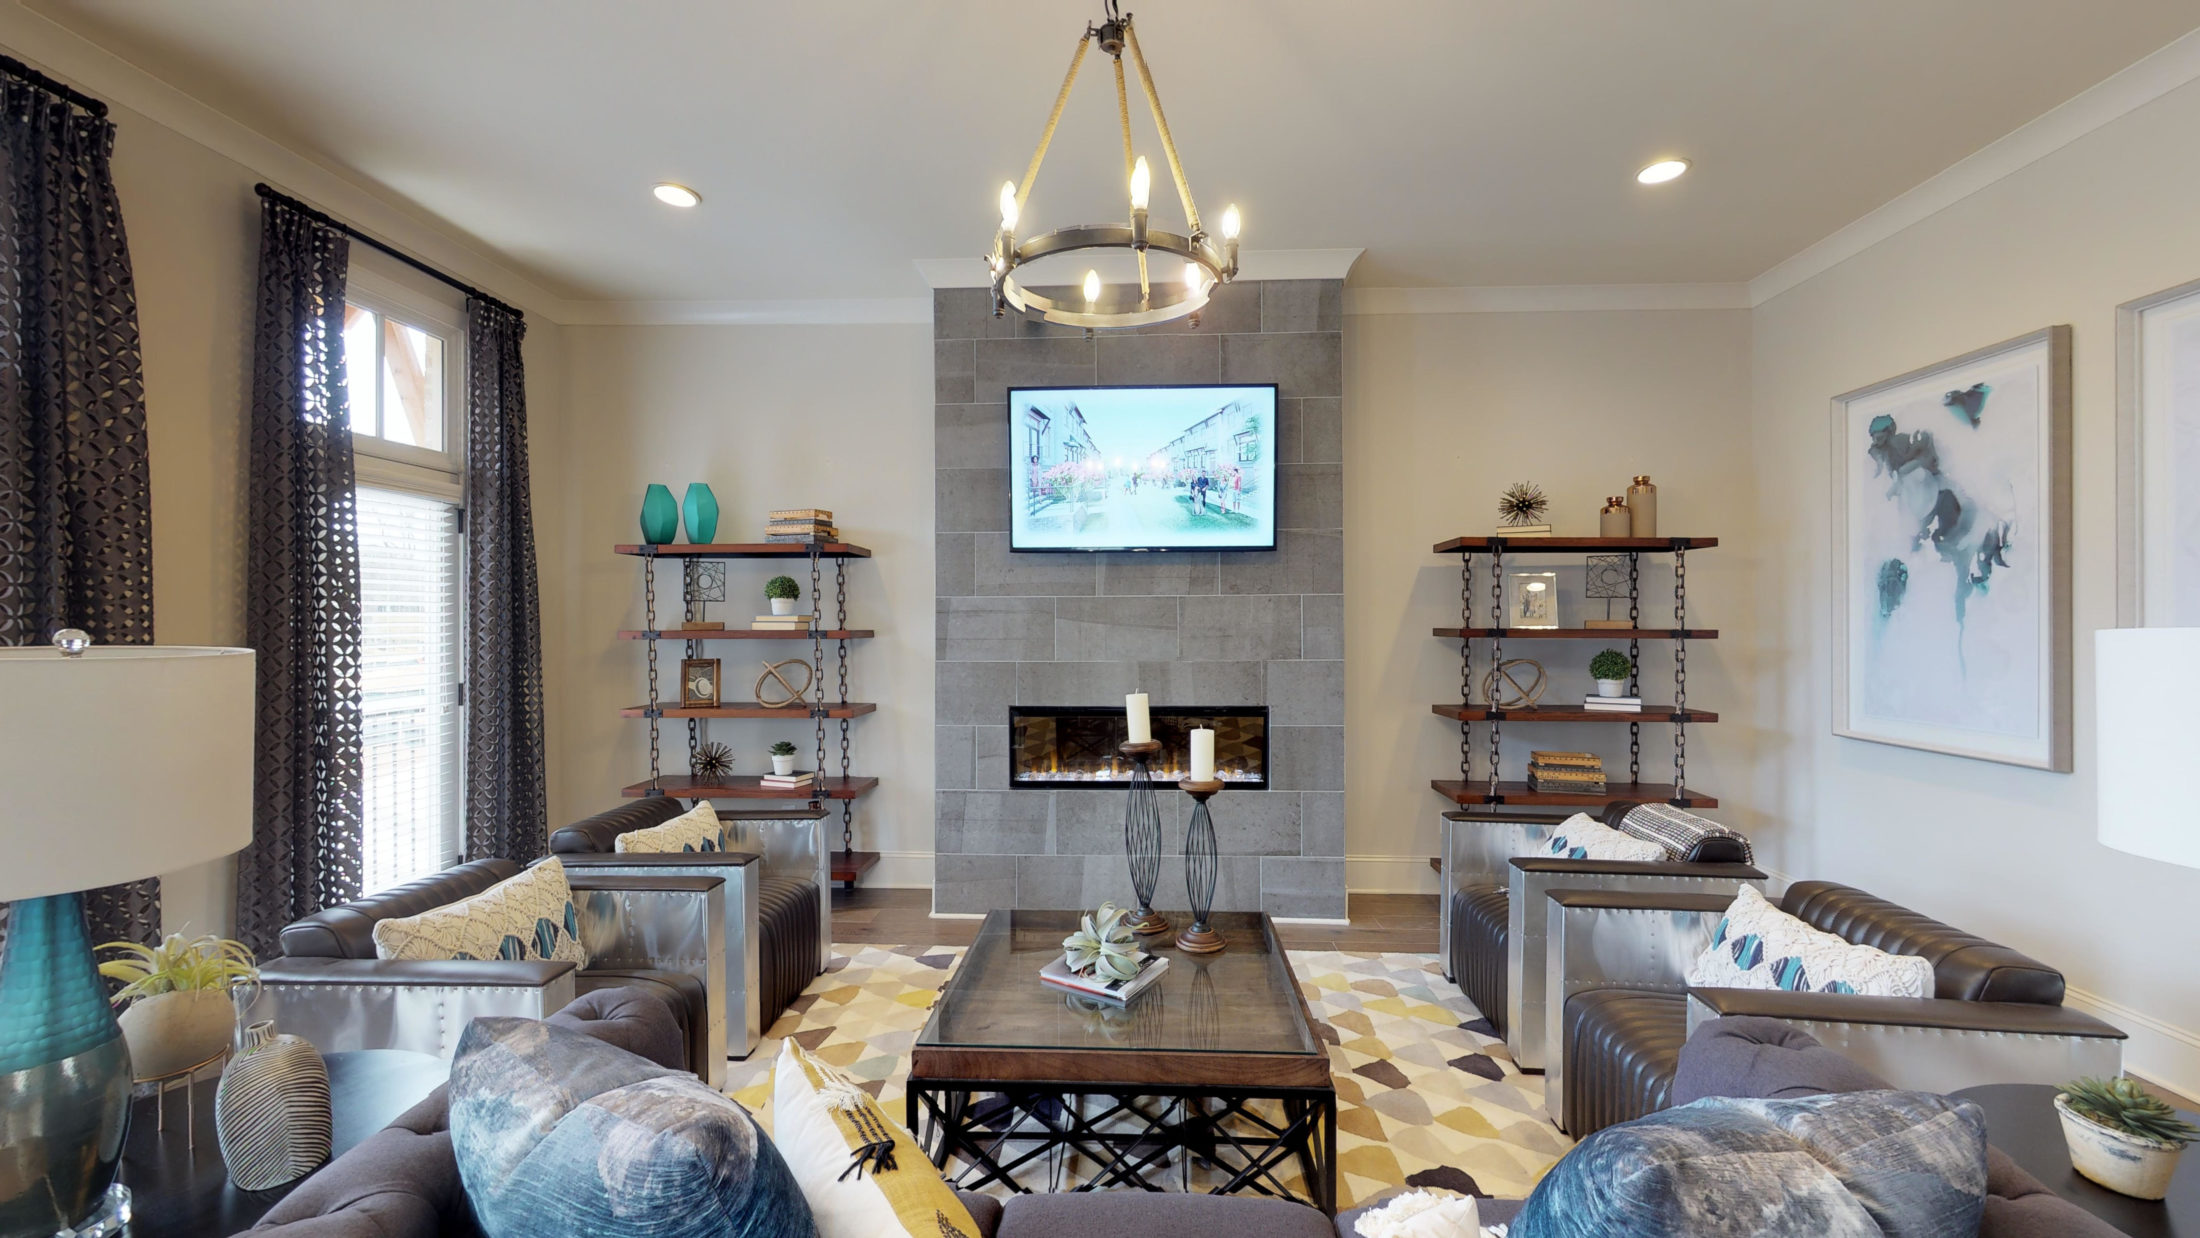 Century Communities: Edingberg Home Design